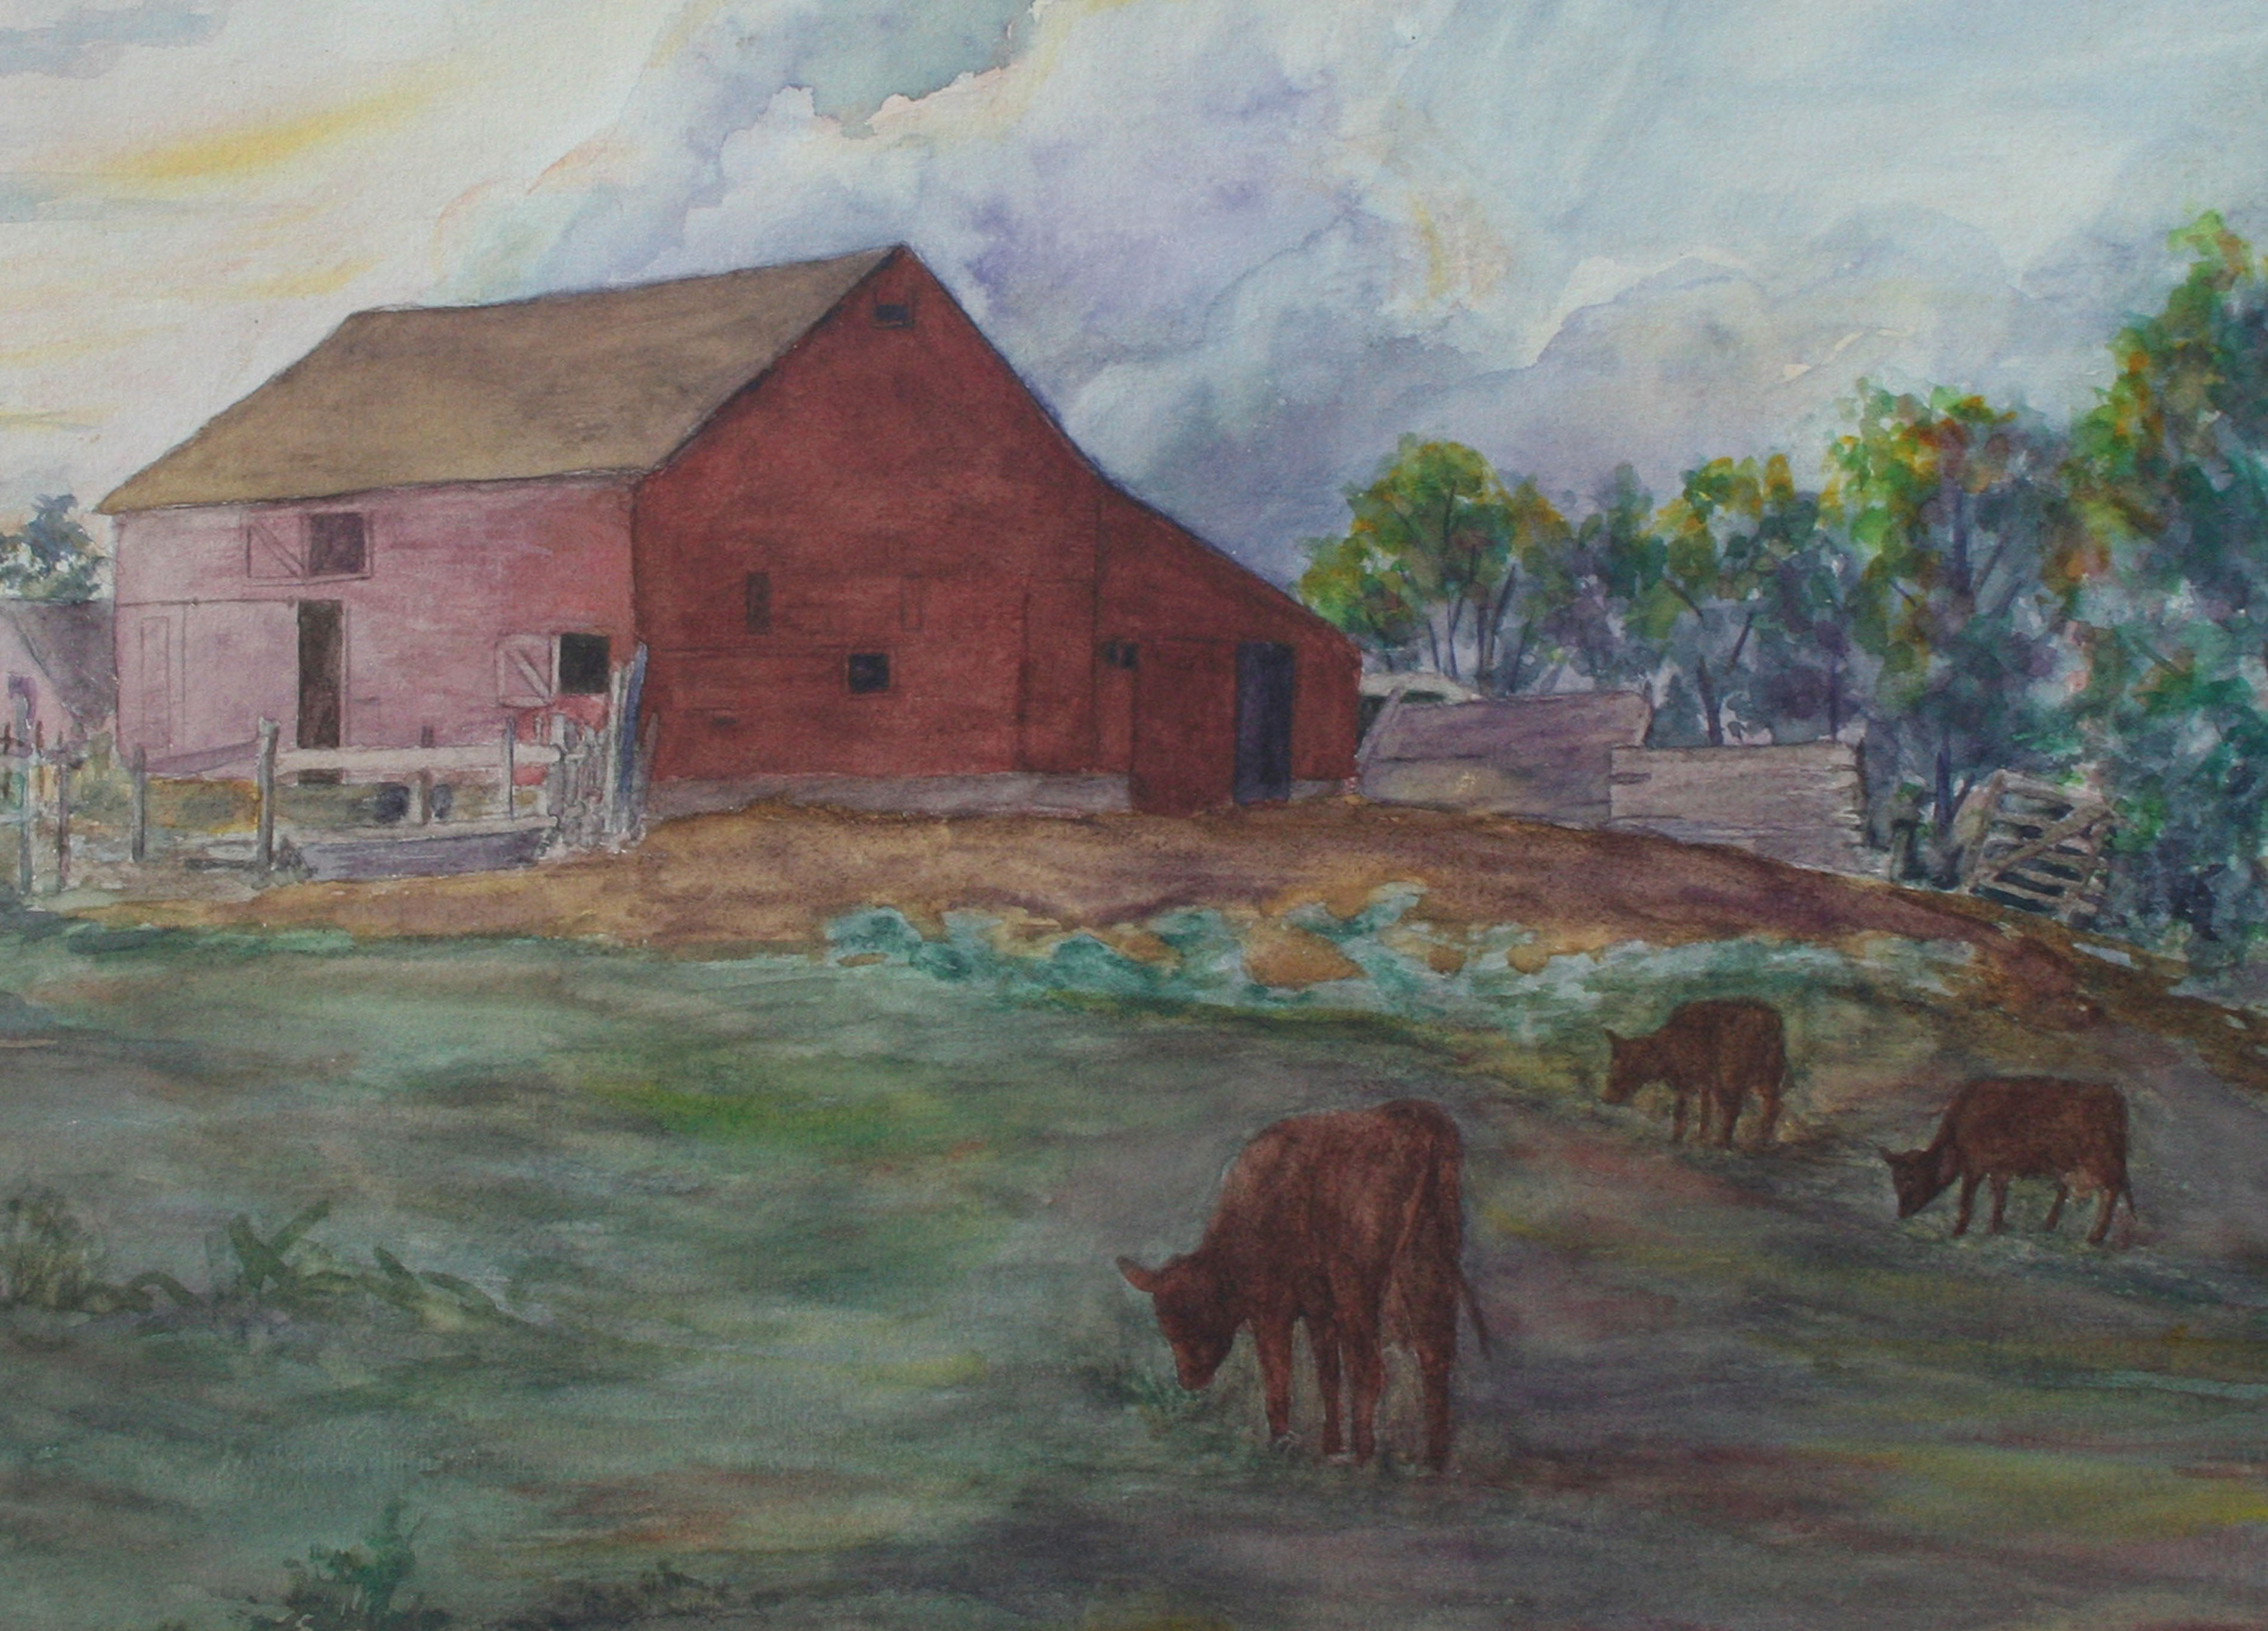 Picturesque Red Farmhouse, 1940